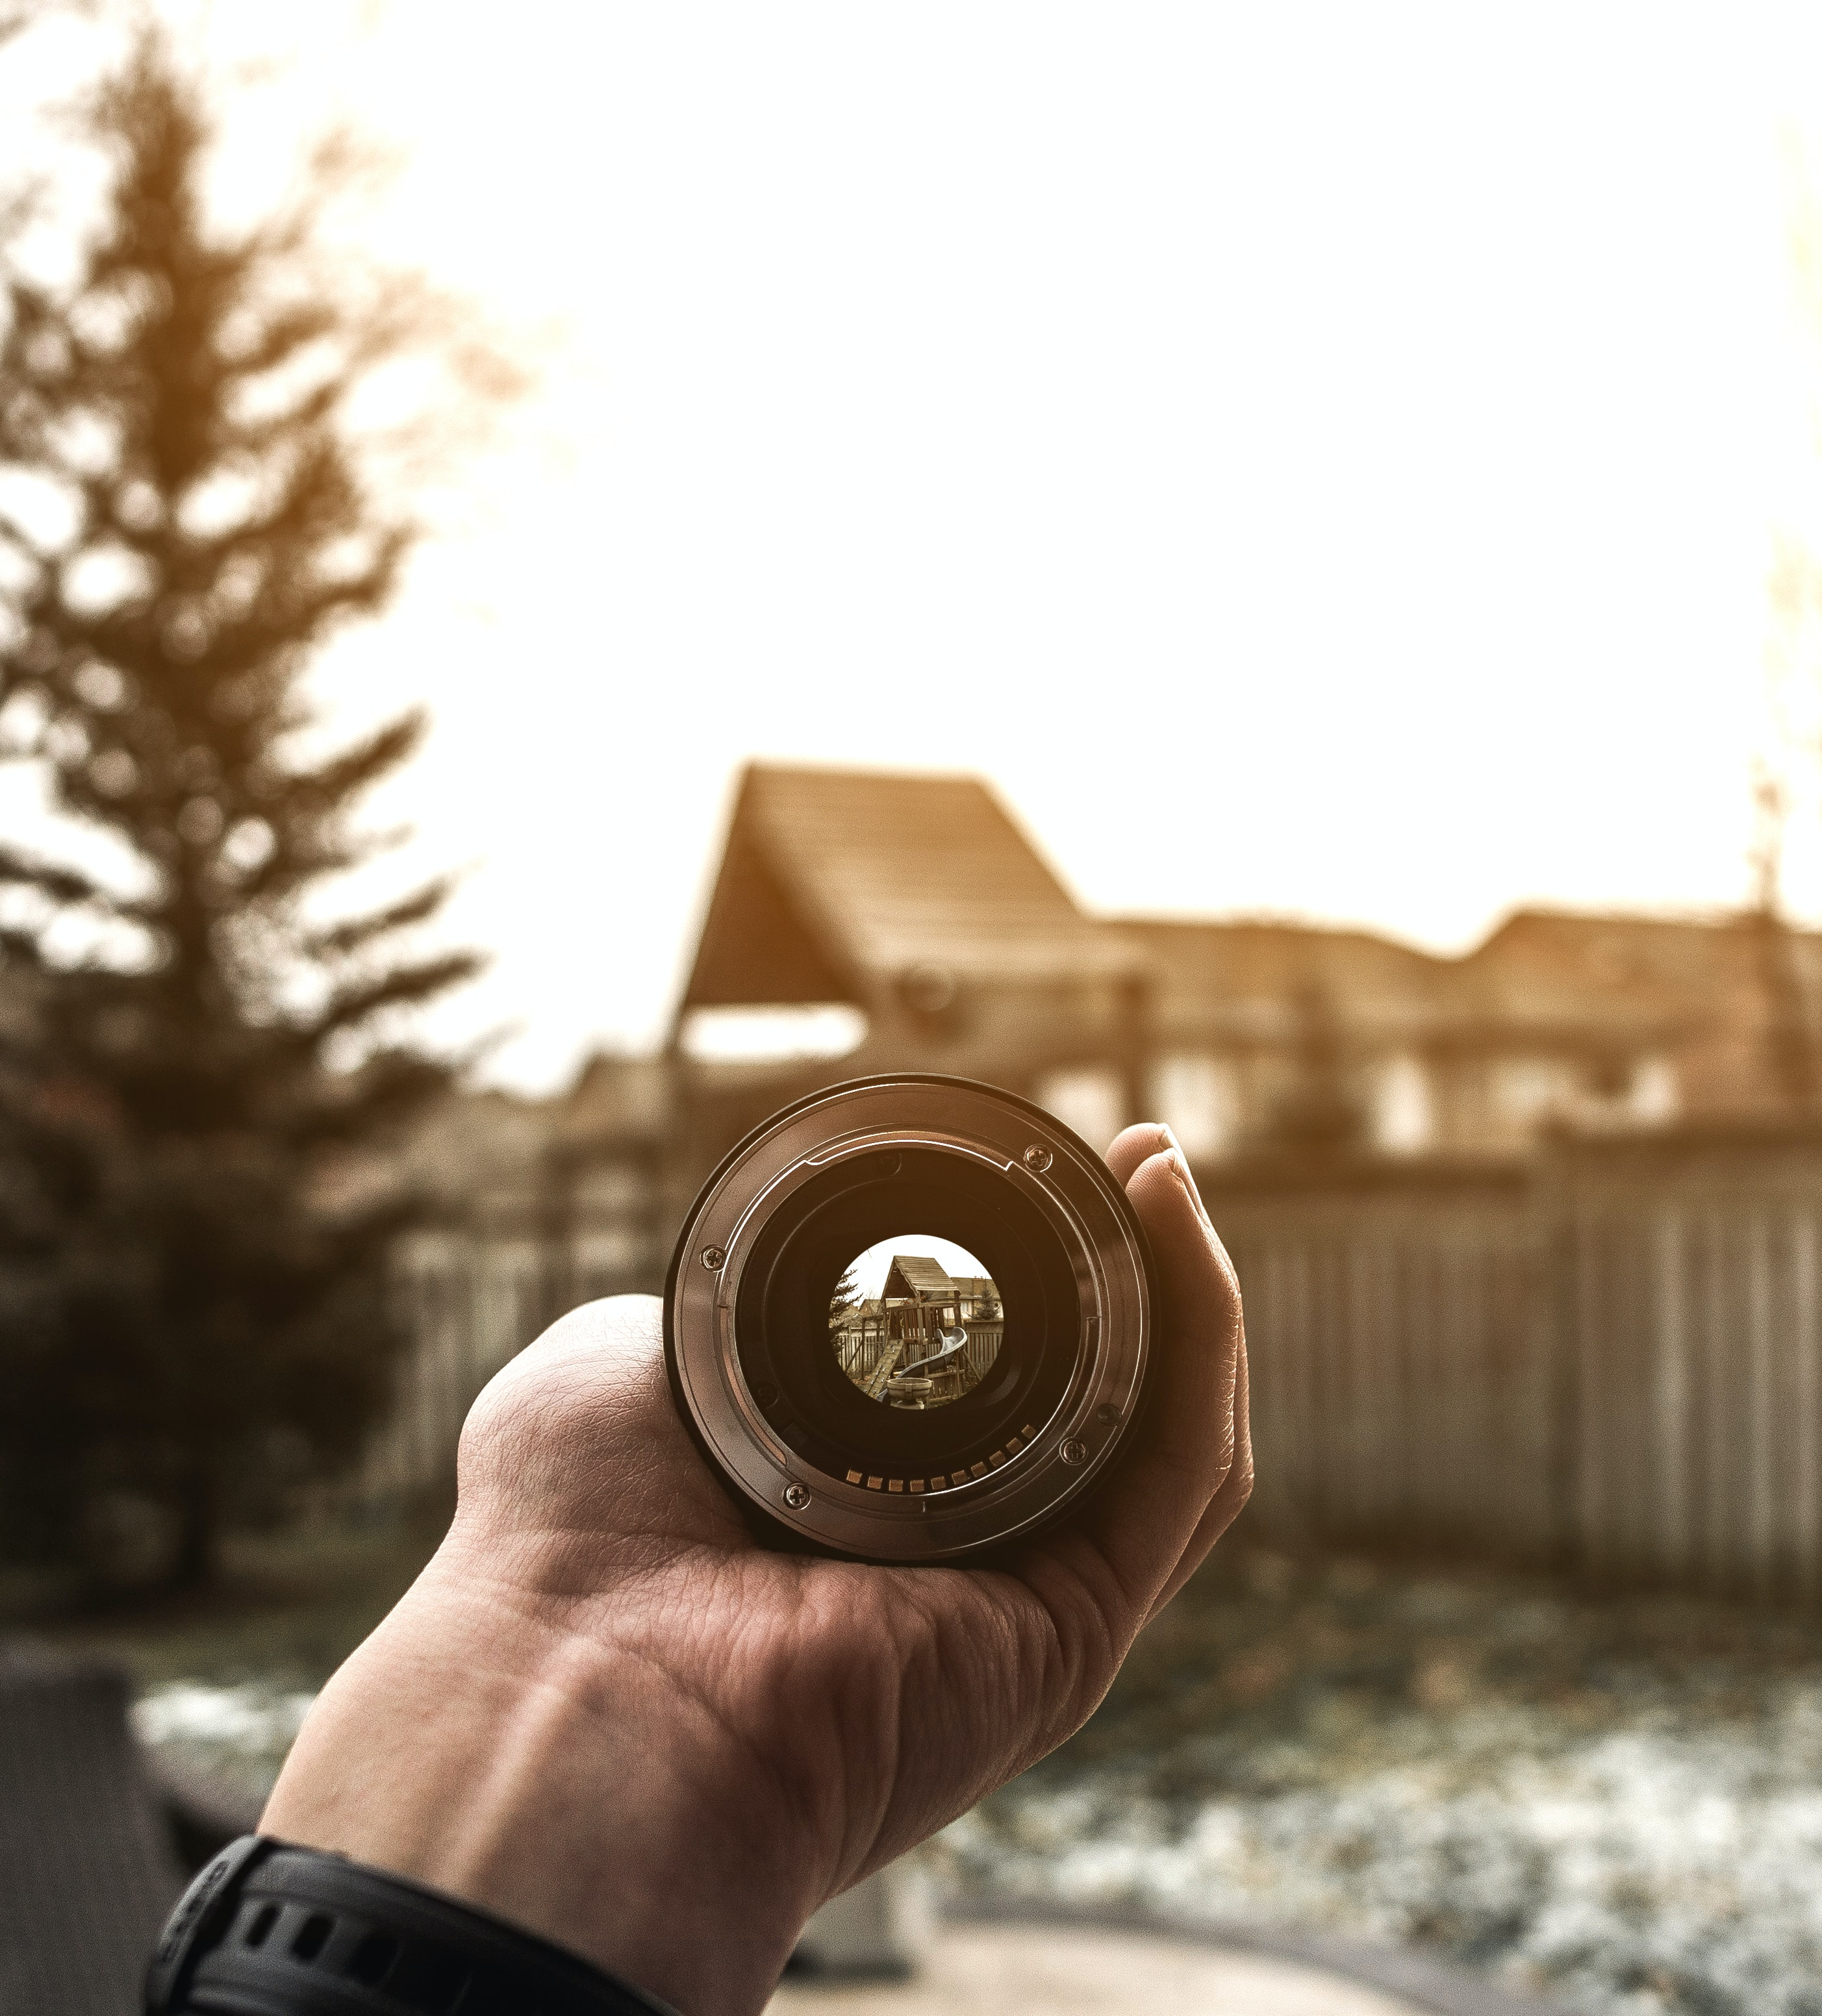 Close-up of a hand holding a camera lens pointed at a small hut